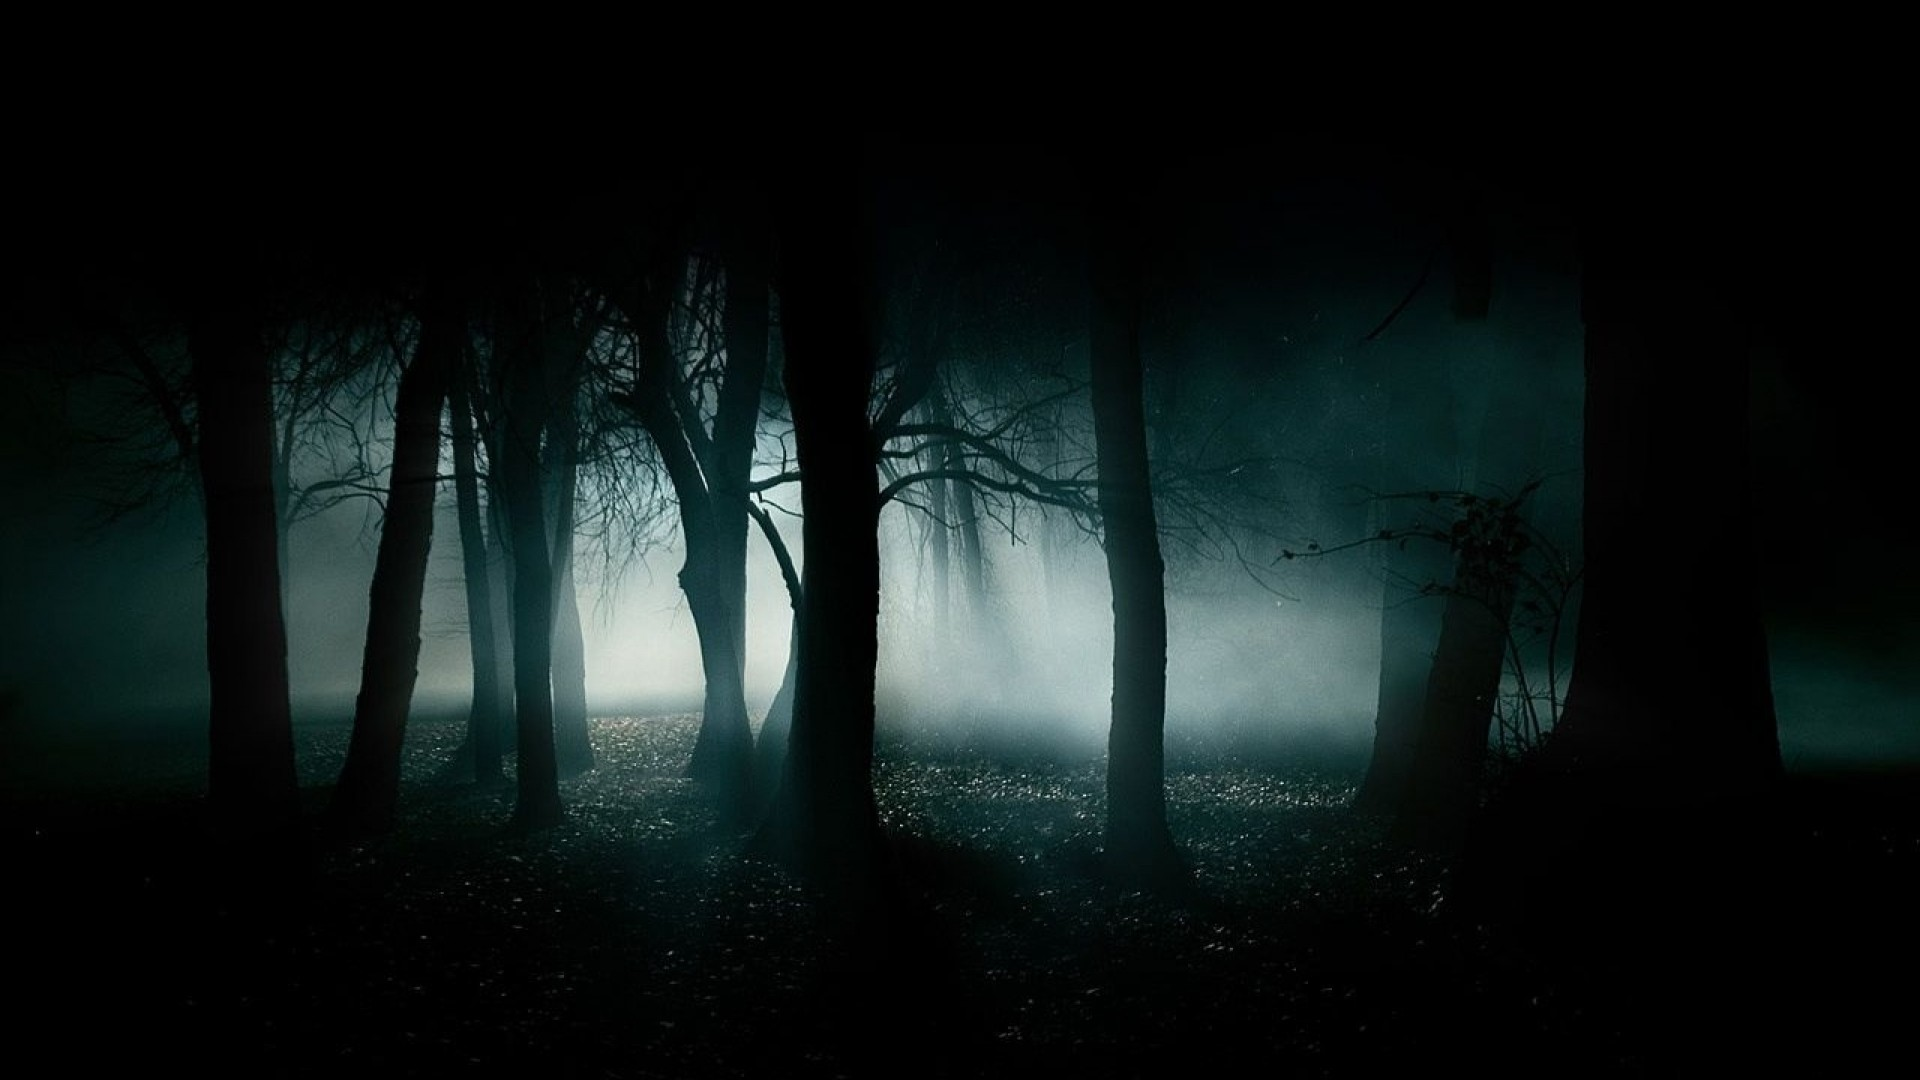 Most Haunting Scary Wallpapers of All TIme 1680×1050 Wallpapers Horror  Images (44 Wallpapers